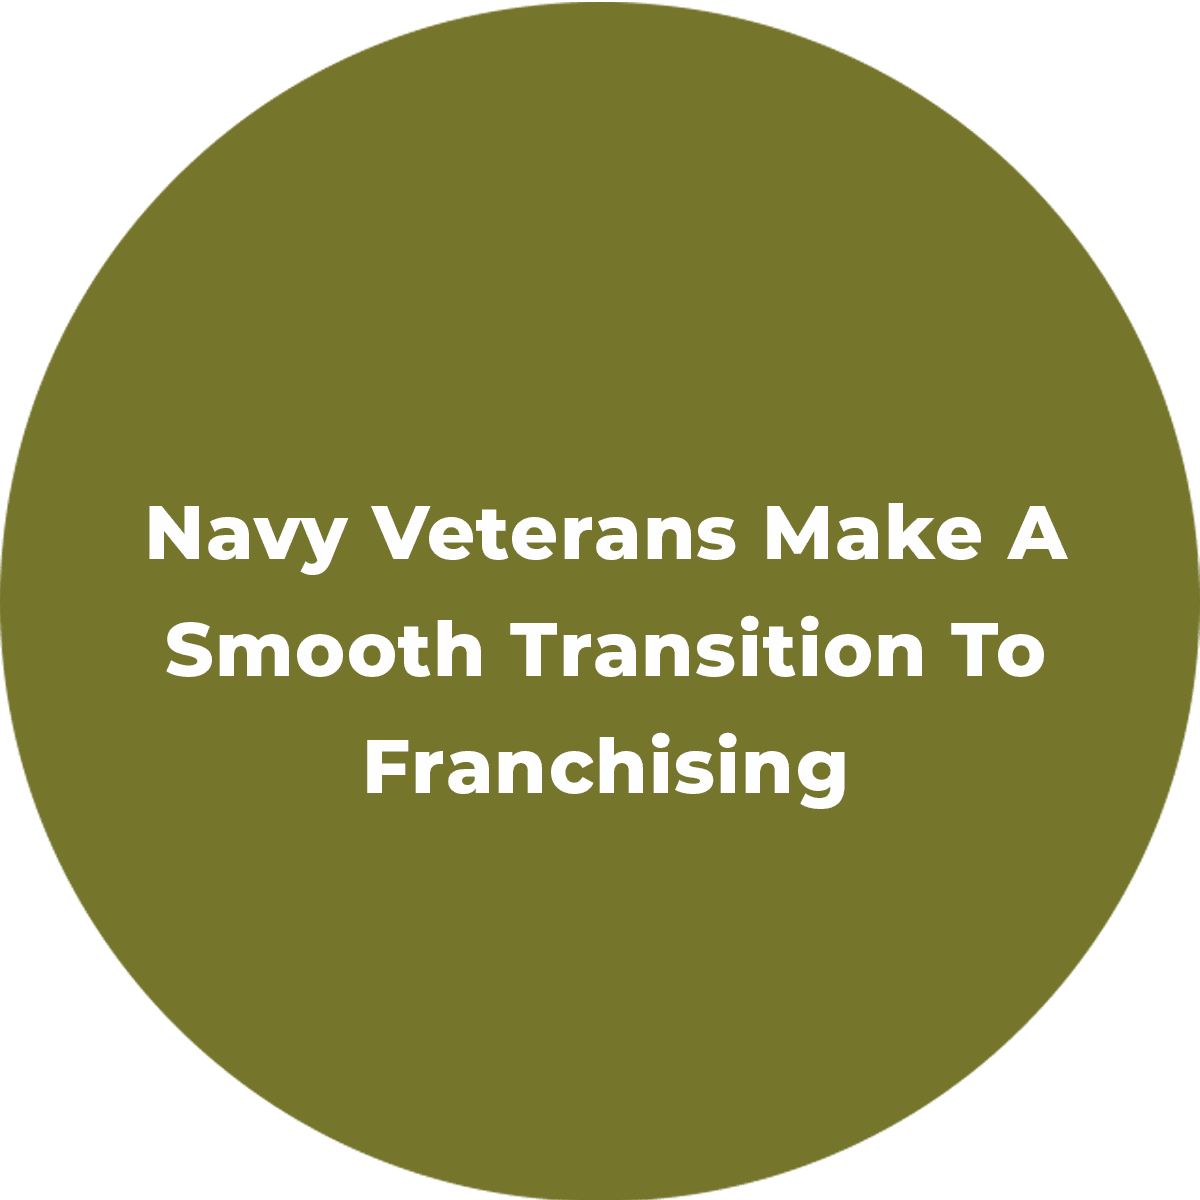 Navy Veterans Make A Smooth Transition To Franchising